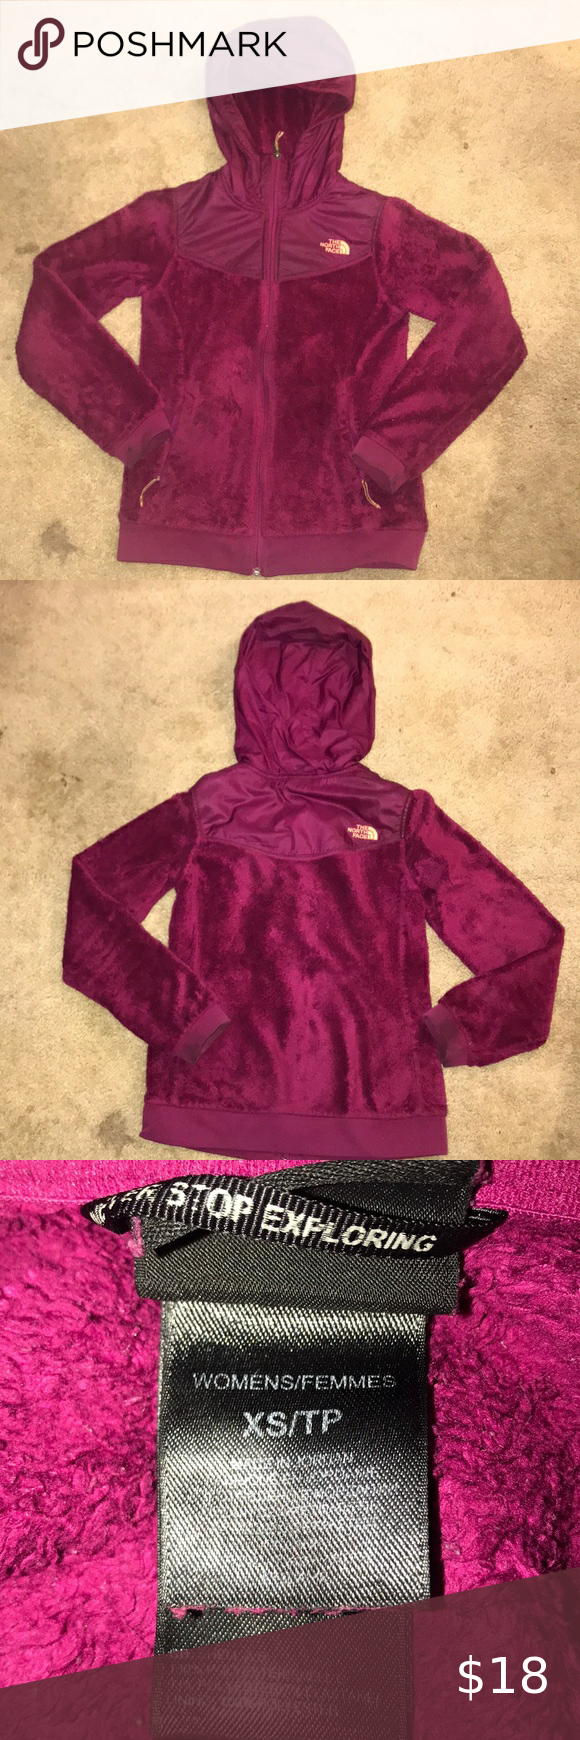 Maroon North Face Jacket North Face Jacket The North Face Maroon [ 1740 x 580 Pixel ]